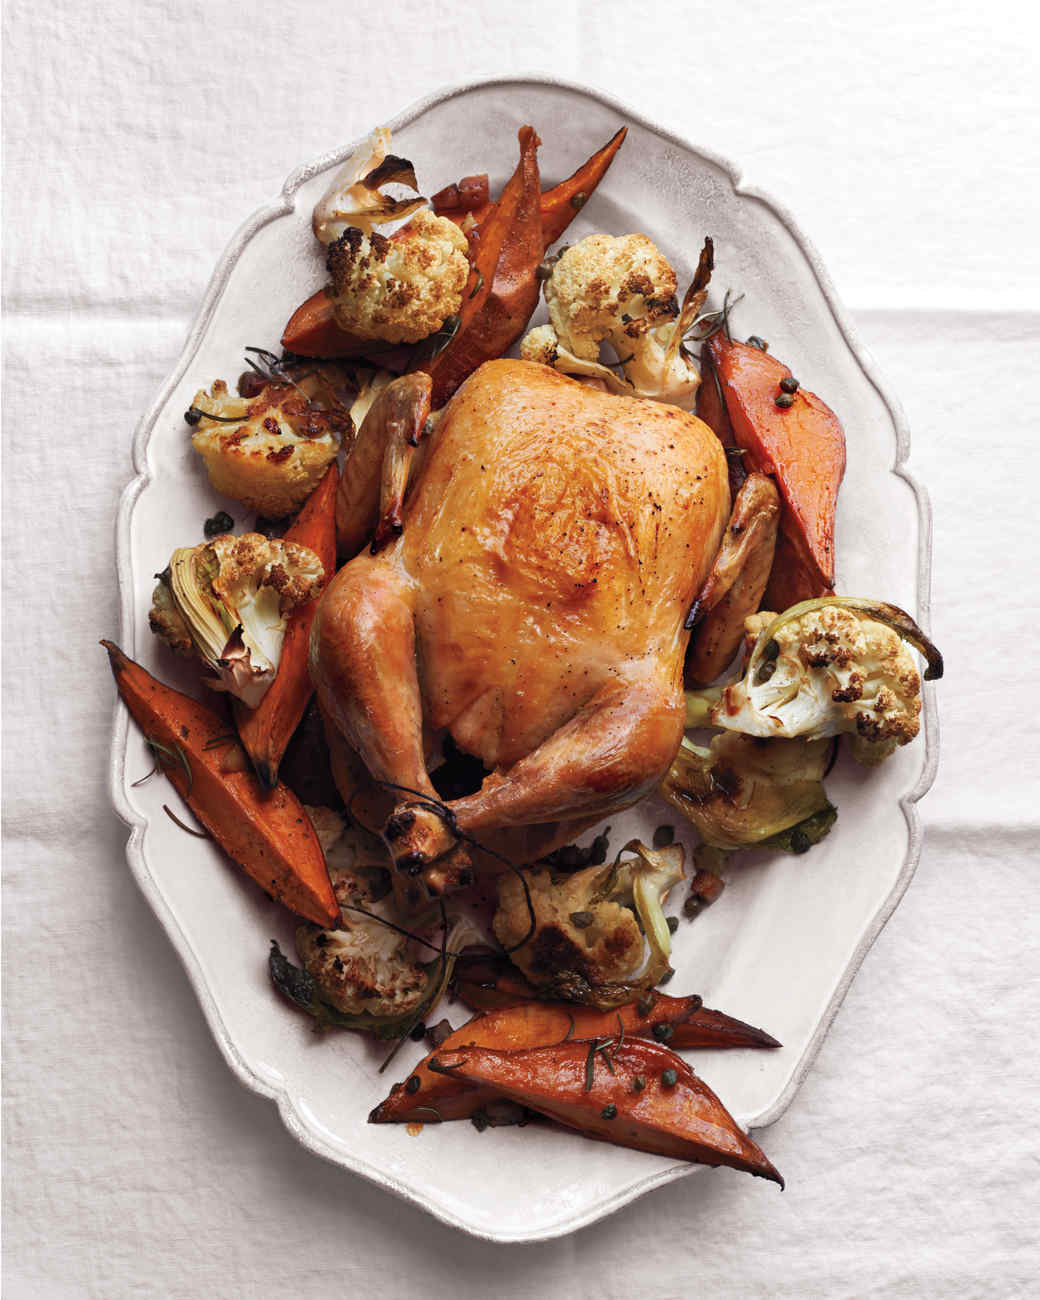 roasted-chicken-and-vegetables-074-d111131.jpg